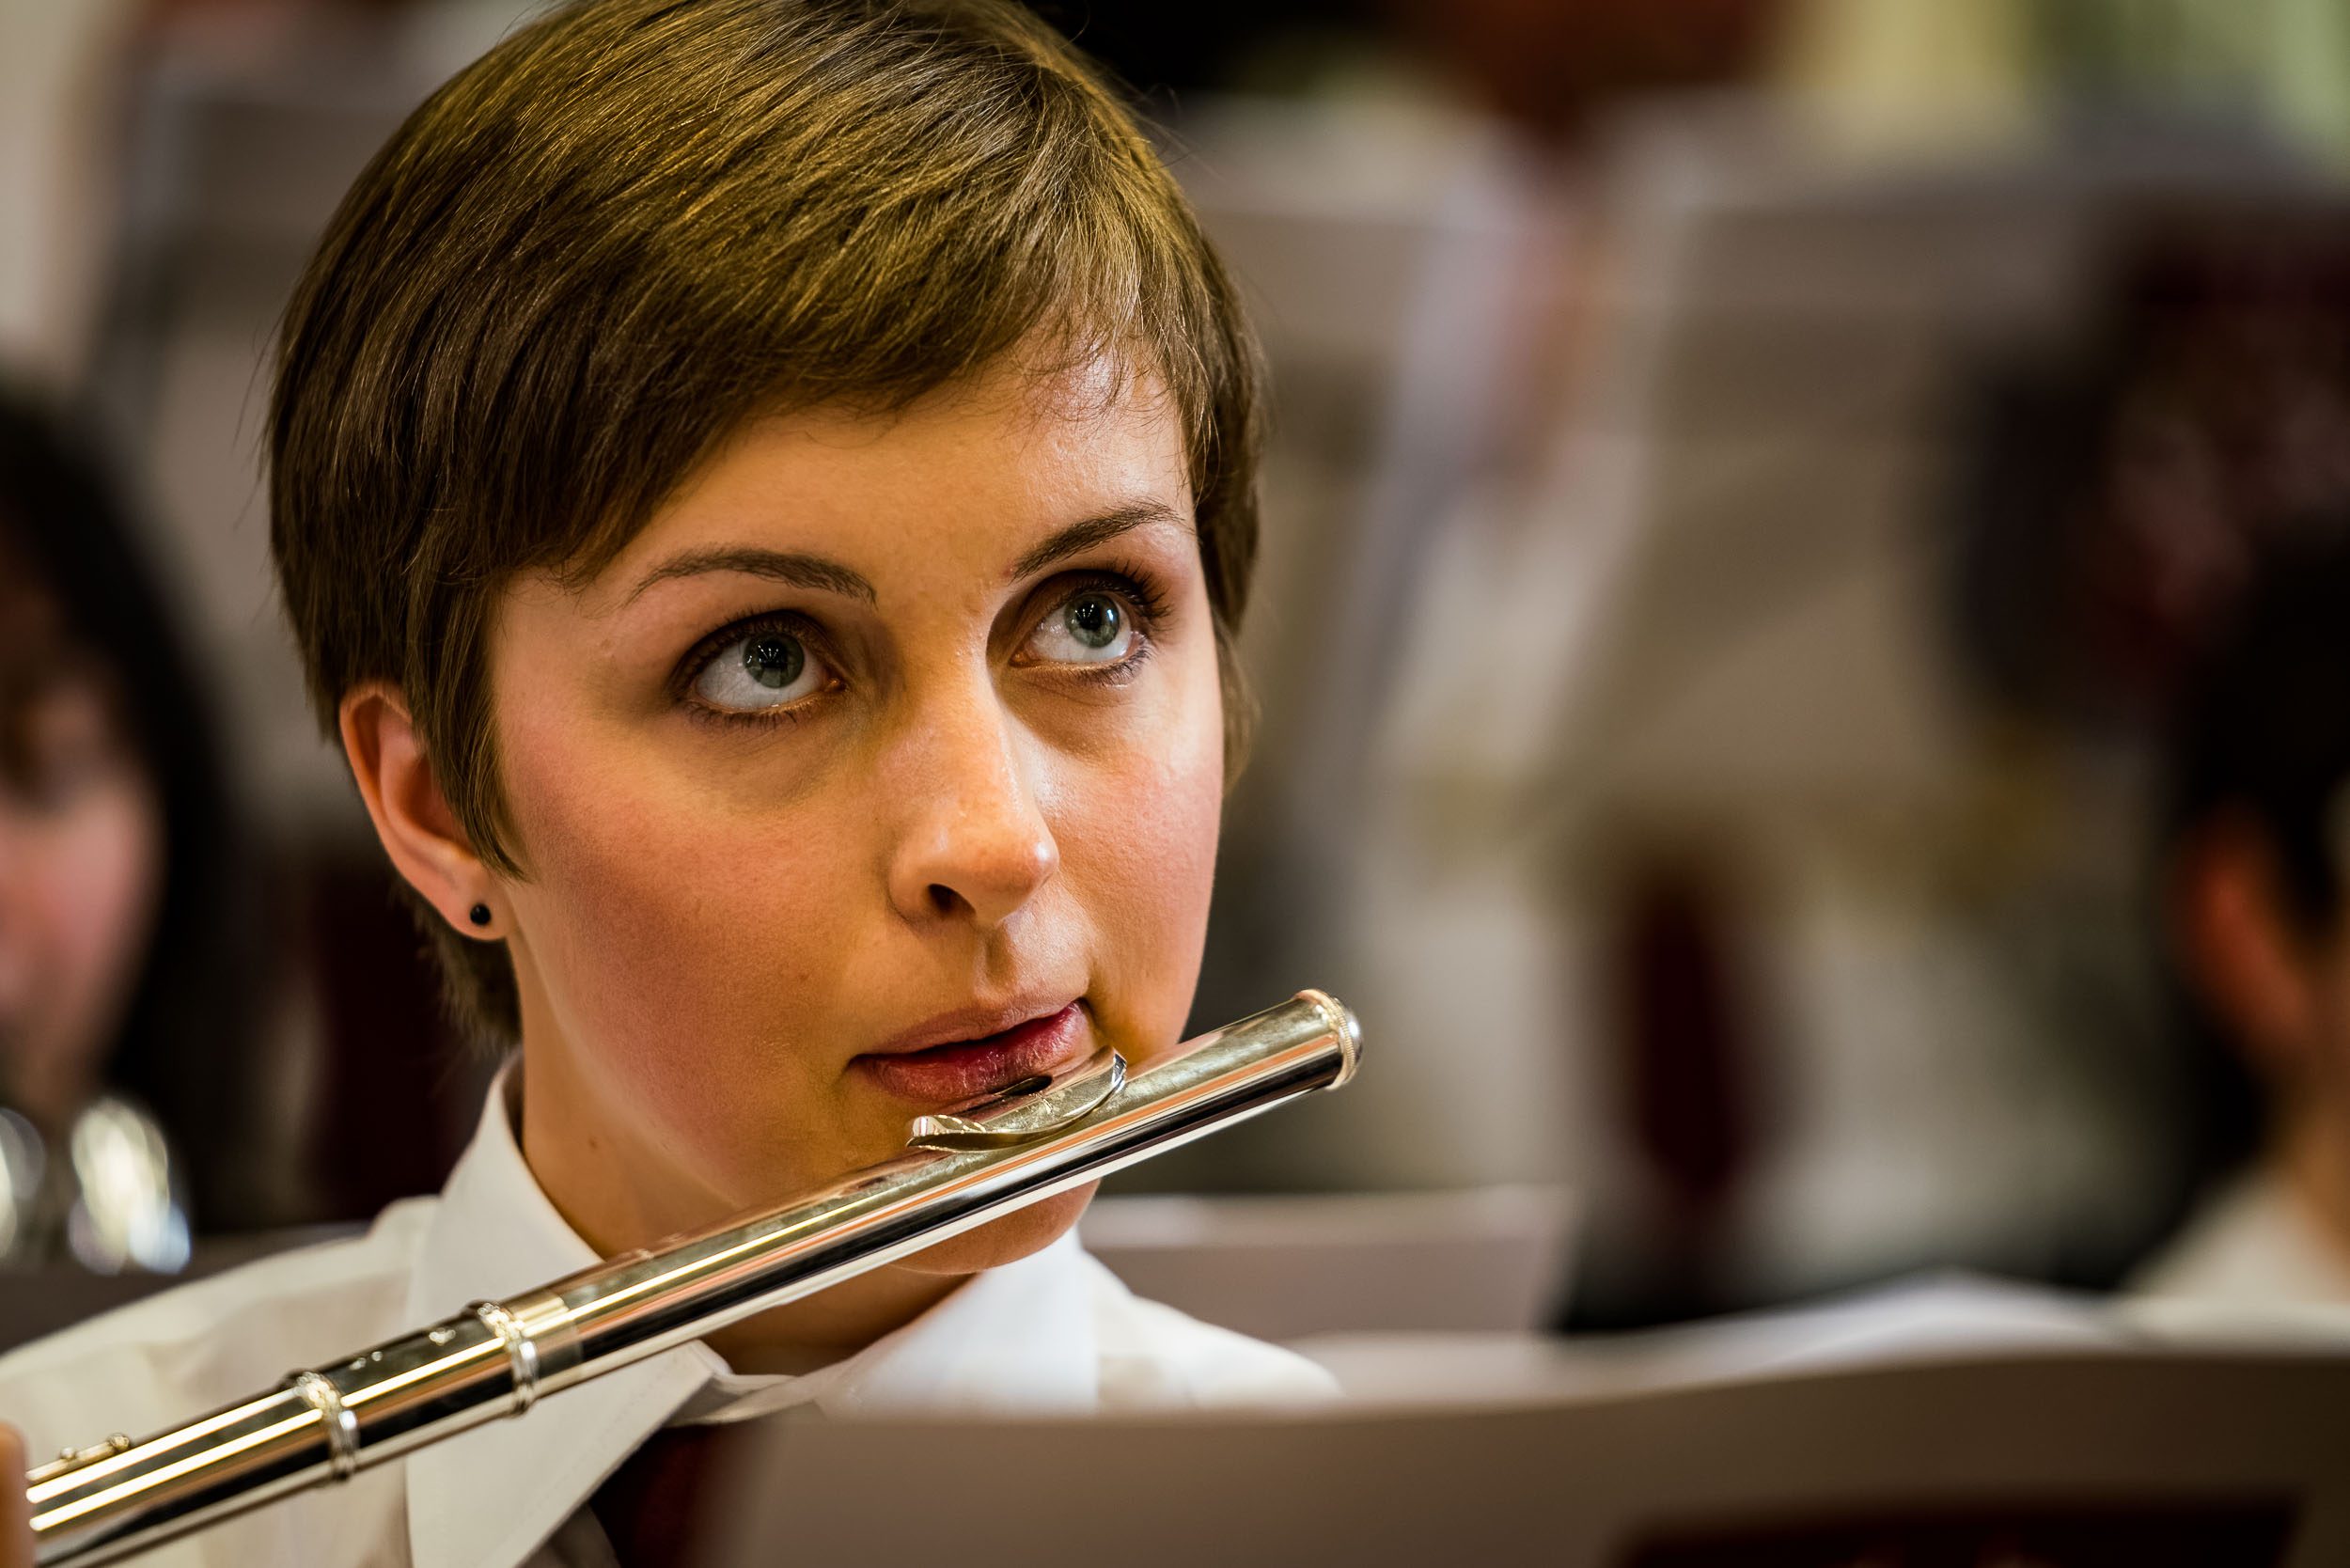 Concert Photography of Classical Music Performed by a Brussels P